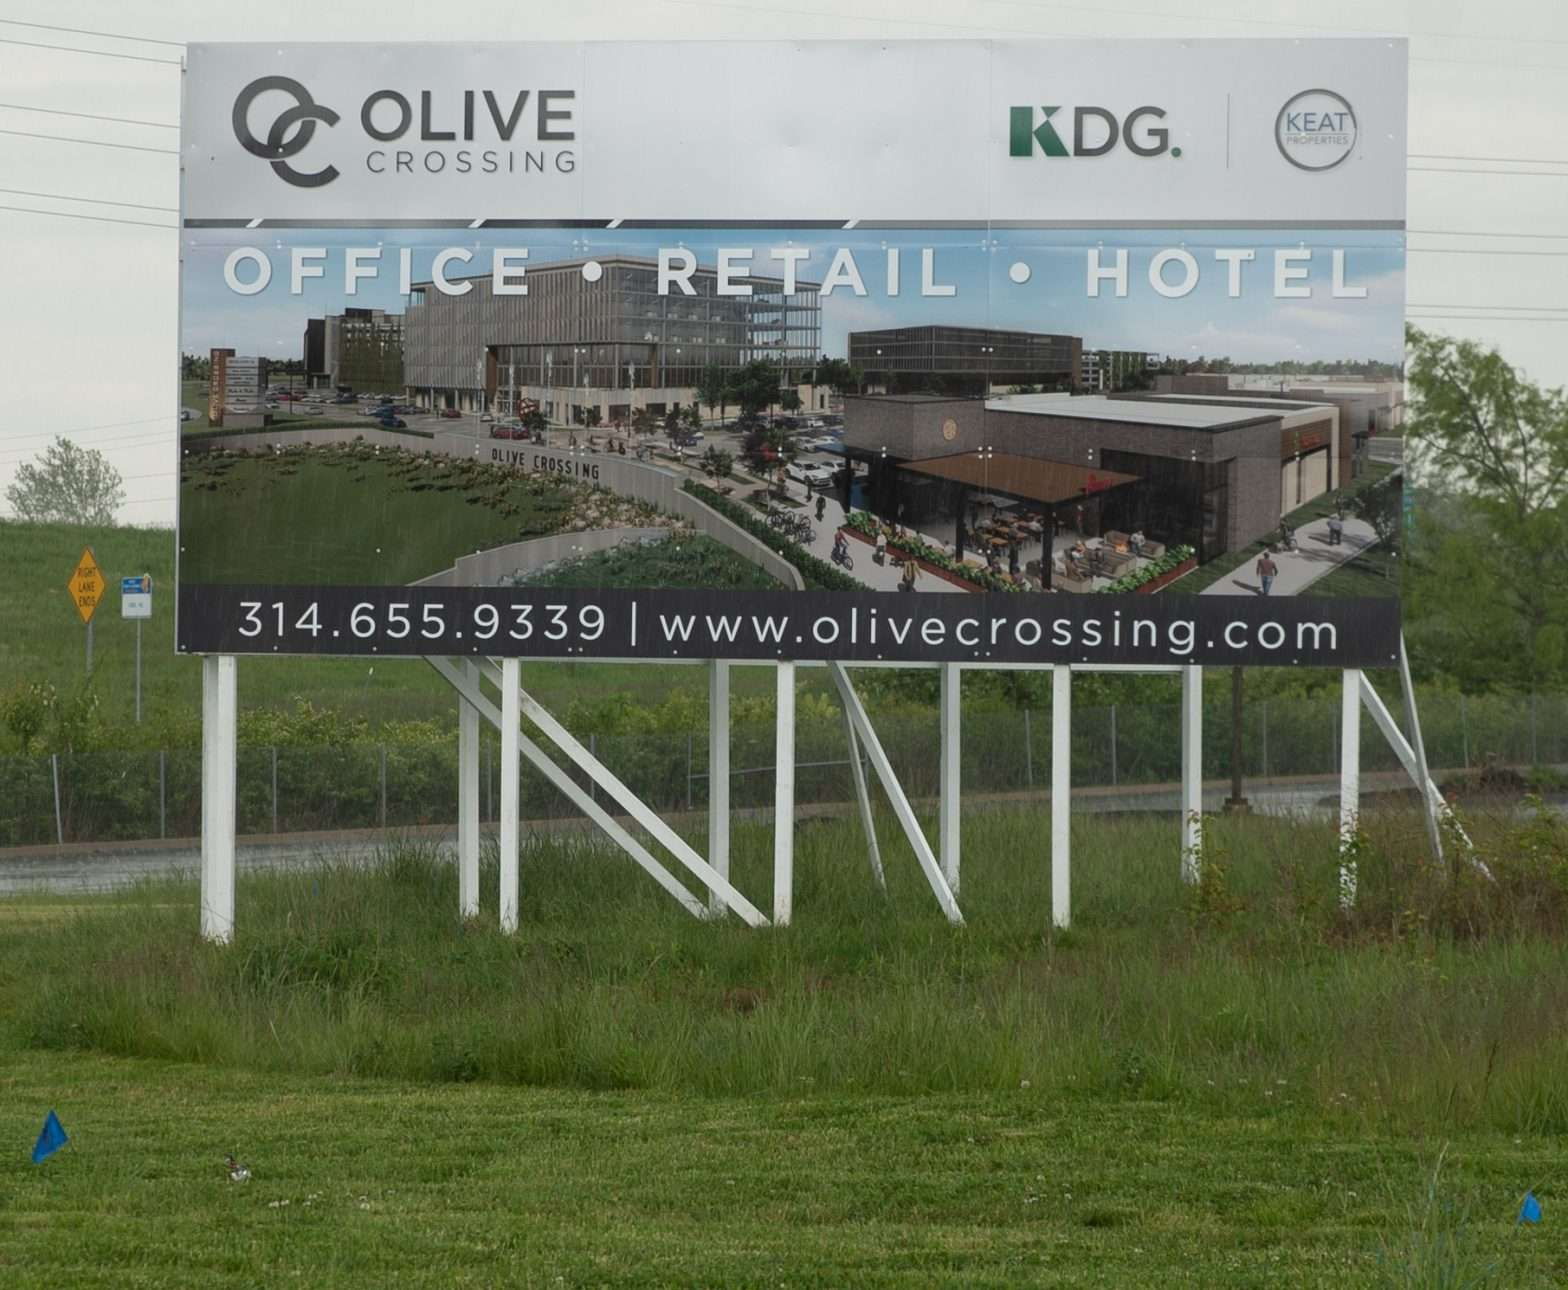 Billboard for Olive Crossing Development by Keat Properties at Olive Blvd and I-170 May 14, 2020. credit craig currie